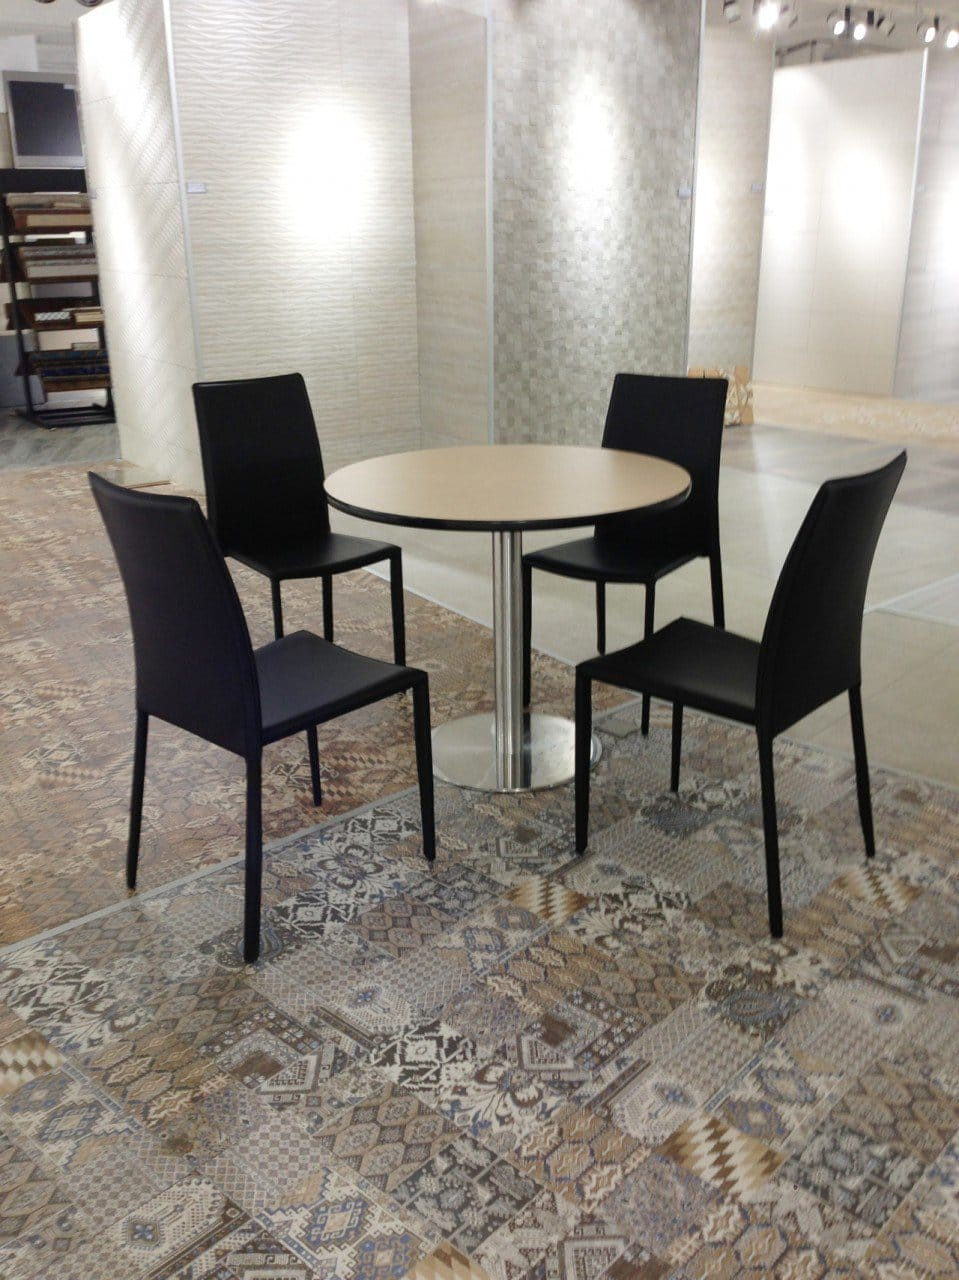 Soon Bee Huat - 257 Changi Road | Products Seen: [Anson Chair & Customised Table in Traxtor Round Table Base]<br />